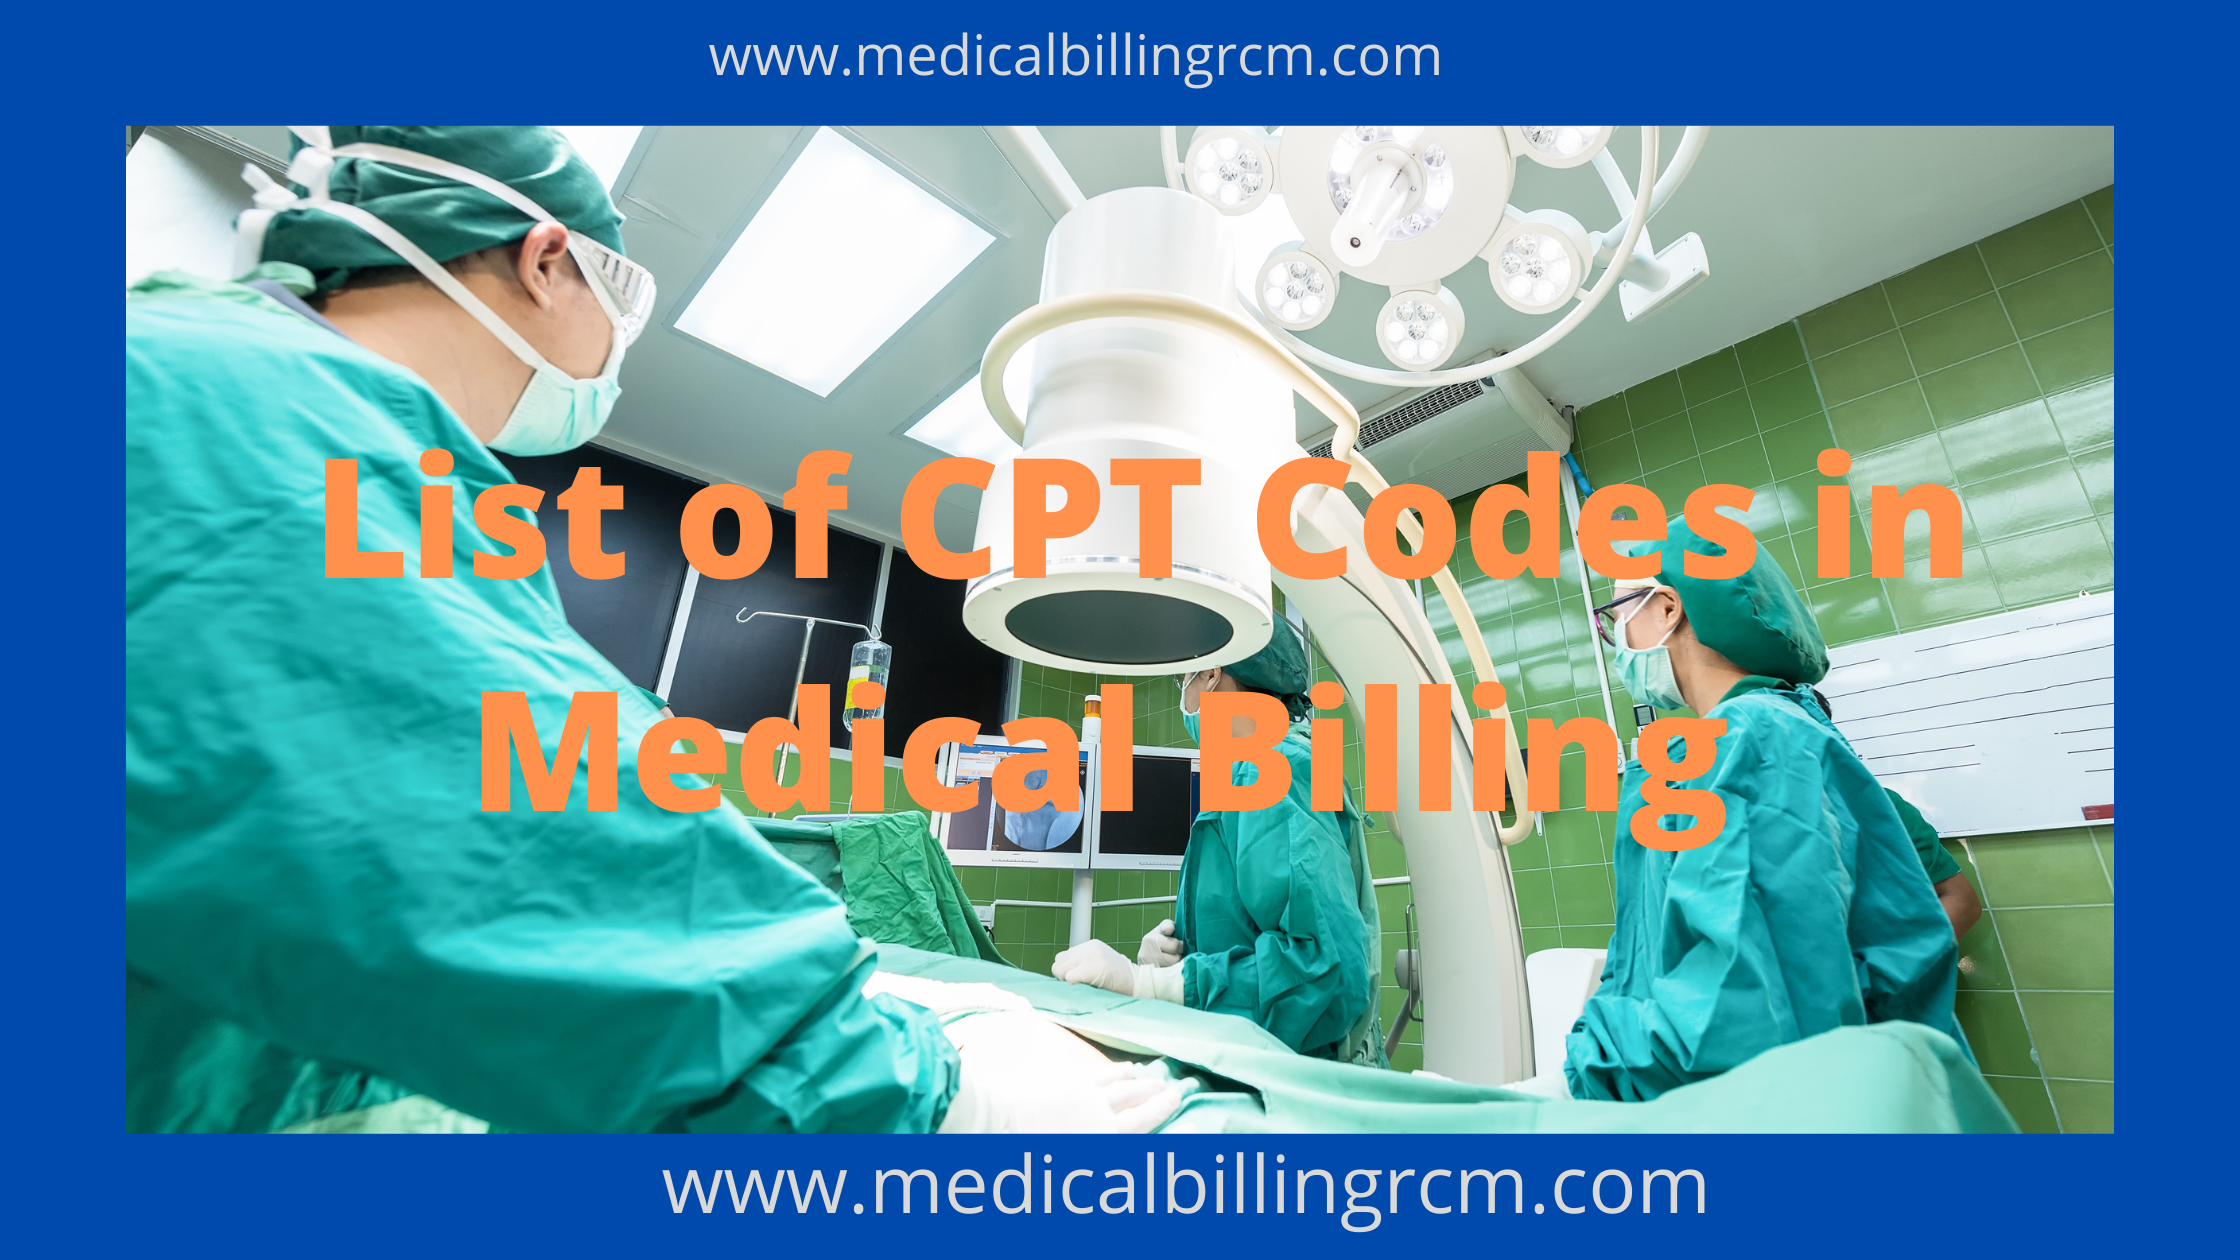 list of cpt codes in medical billing